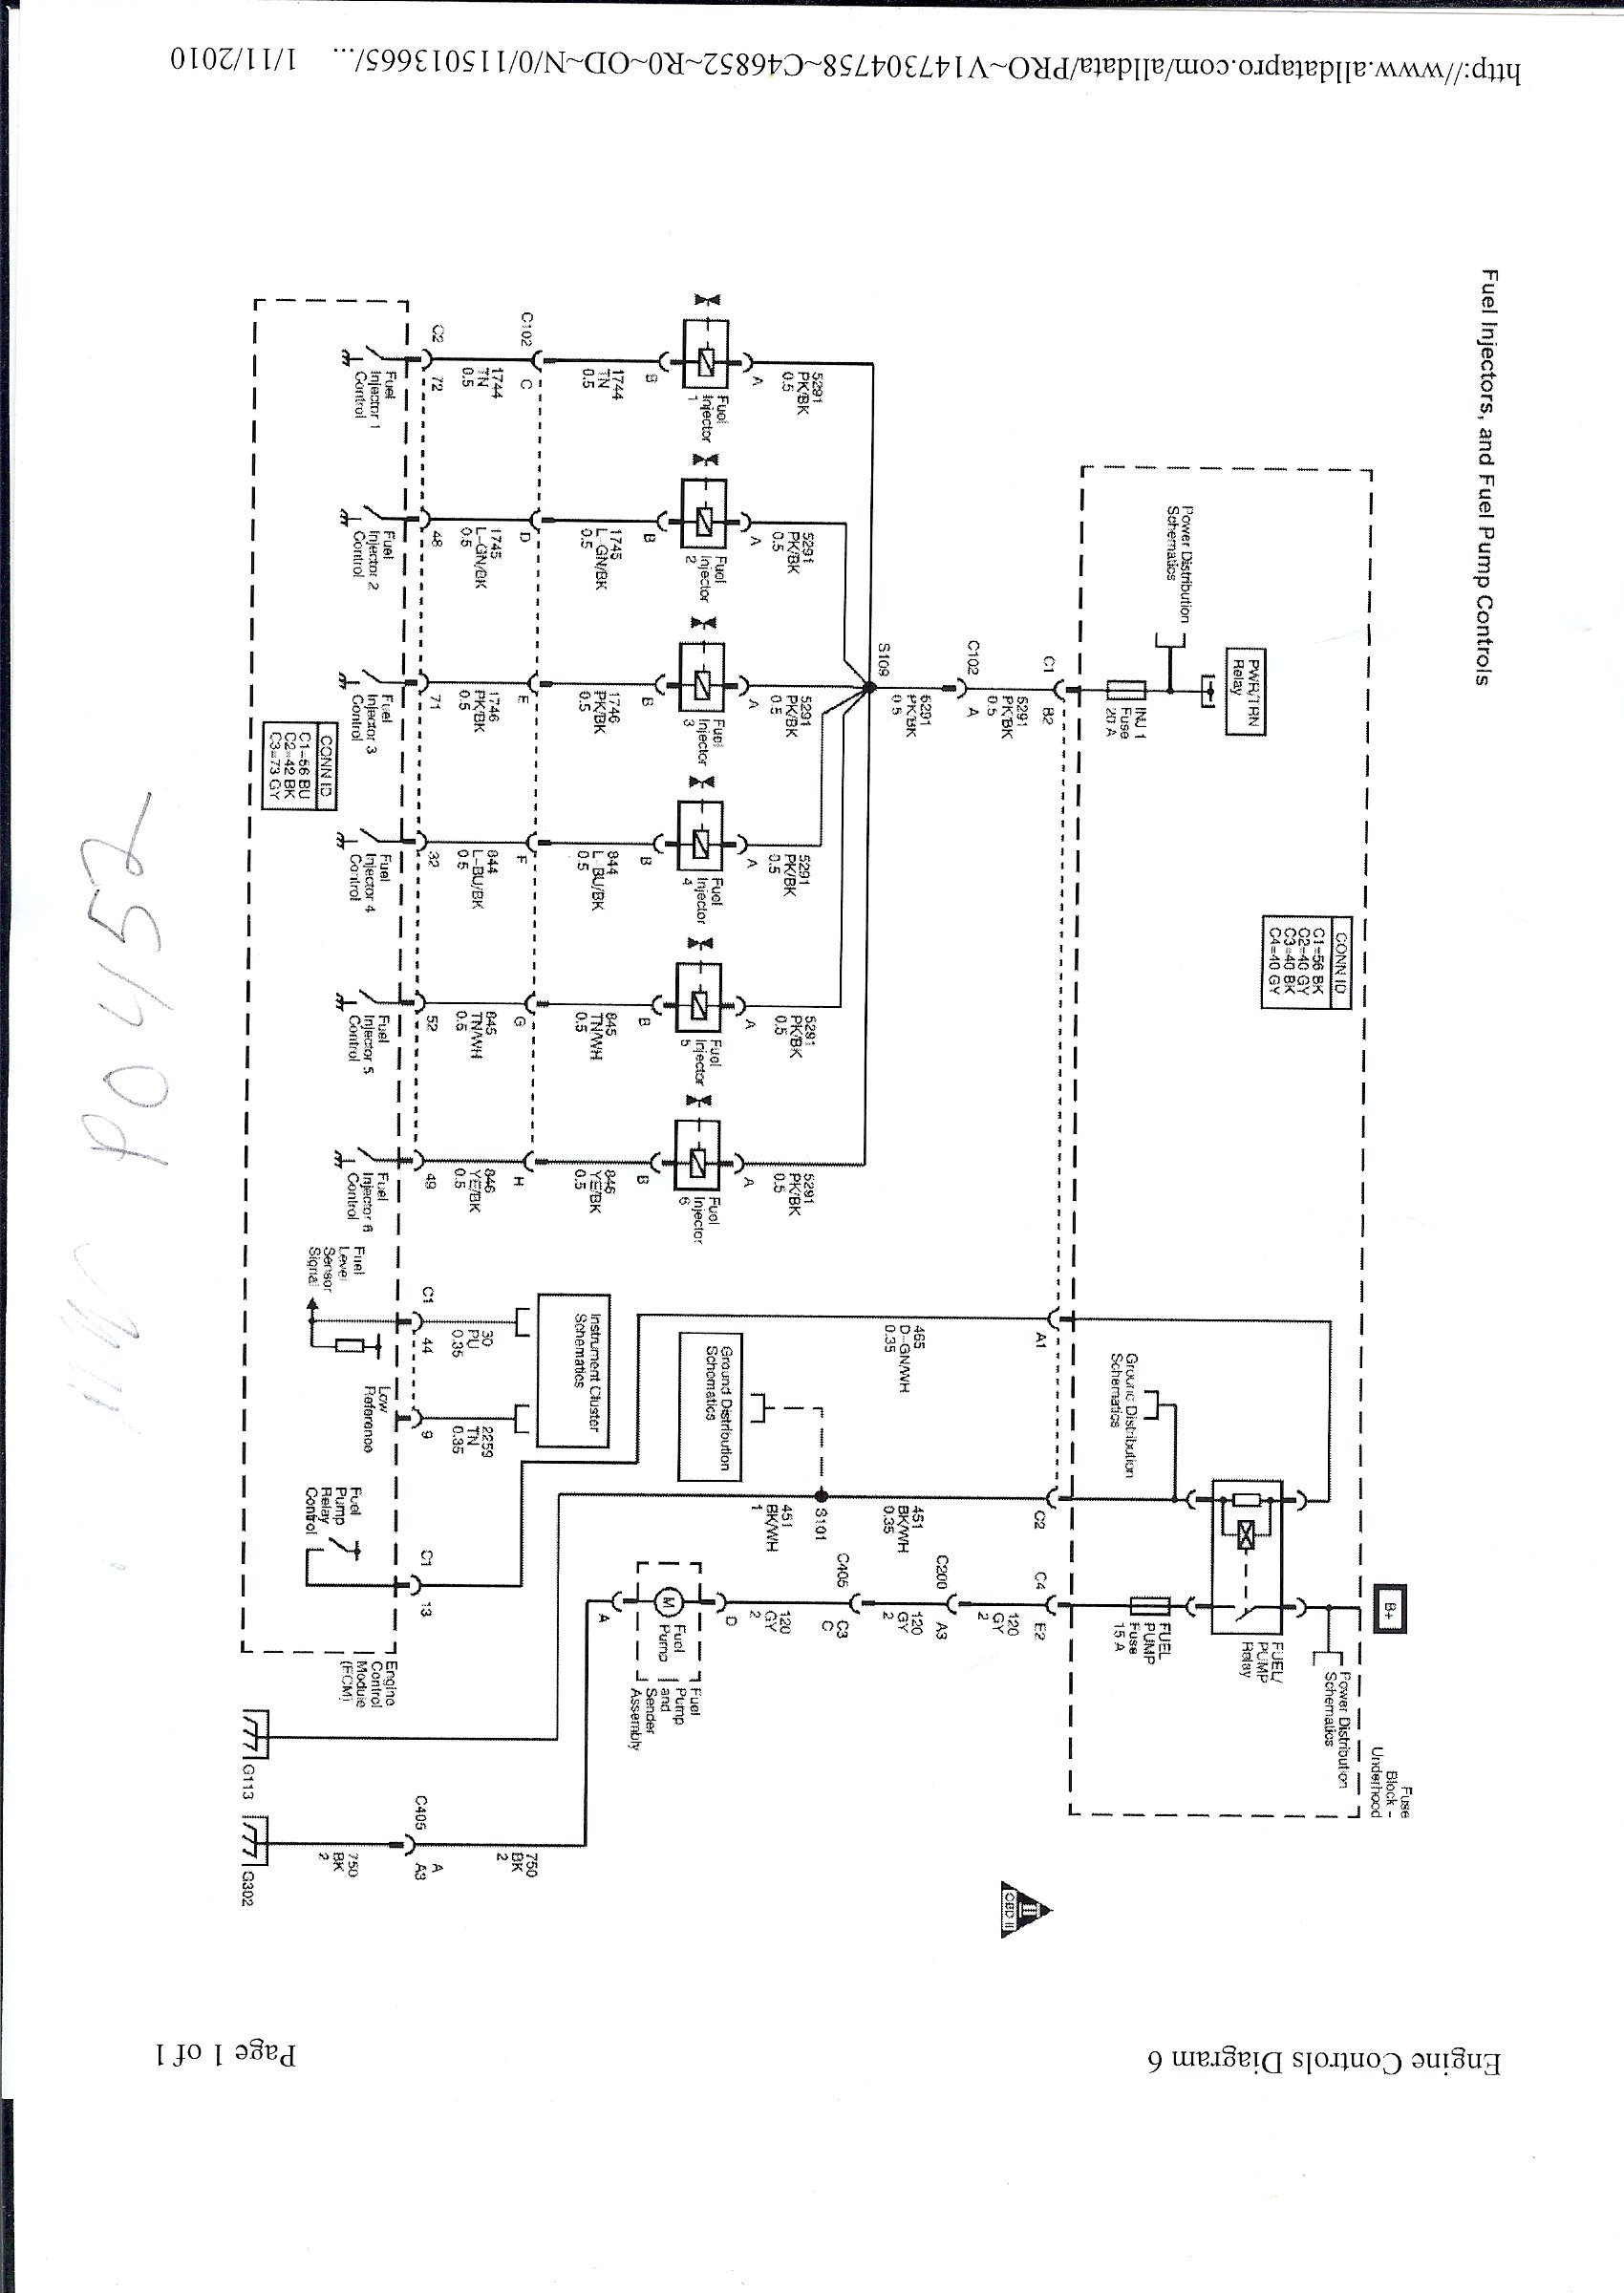 Wiring Diagram on 2007 Chevy Impala Fuel Pump Relay